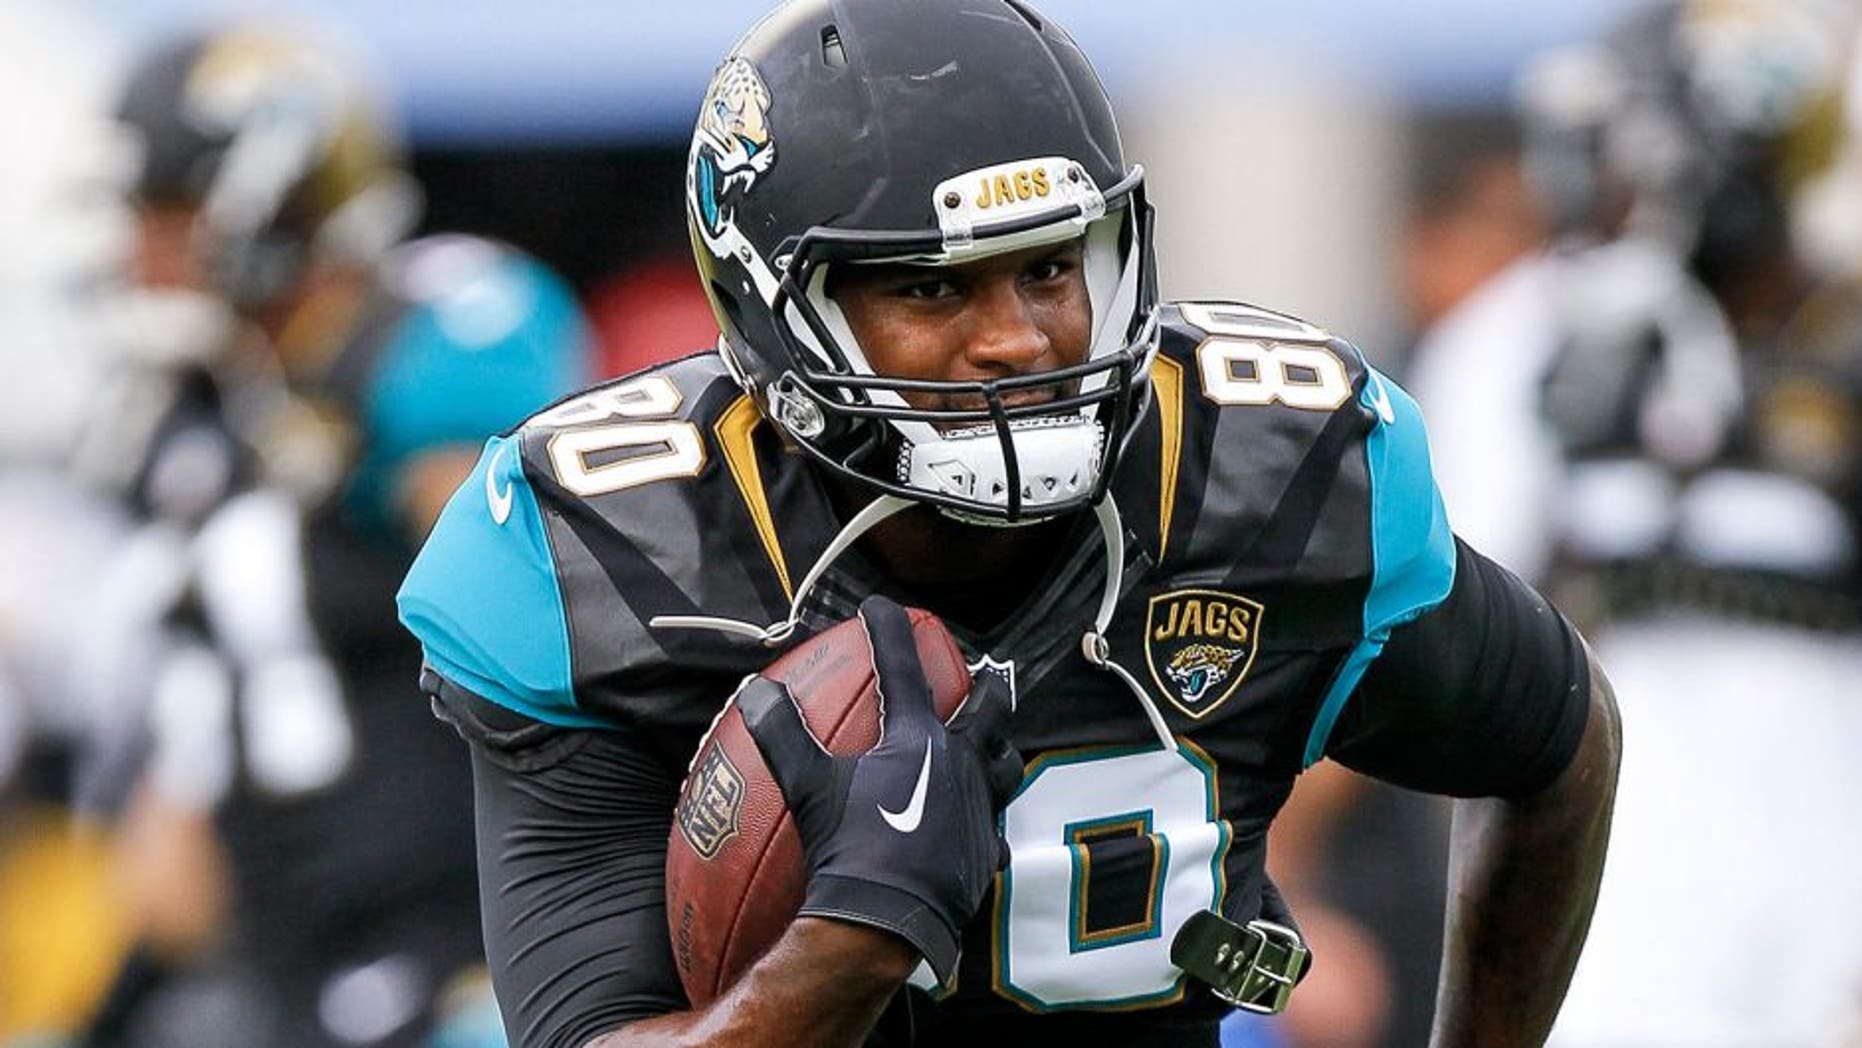 JACKSONVILLE, FL - AUGUST 14: Tight End Julius Thomas #80 of the Jacksonville Jaguars during a preseason game against the Pittsburgh Steelers at EverBank Field on August 14, 2015 in Jacksonville, Florida. The Jaguars defeated the Steelers 23 to 21. (Photo by Don Juan Moore/Getty Images)